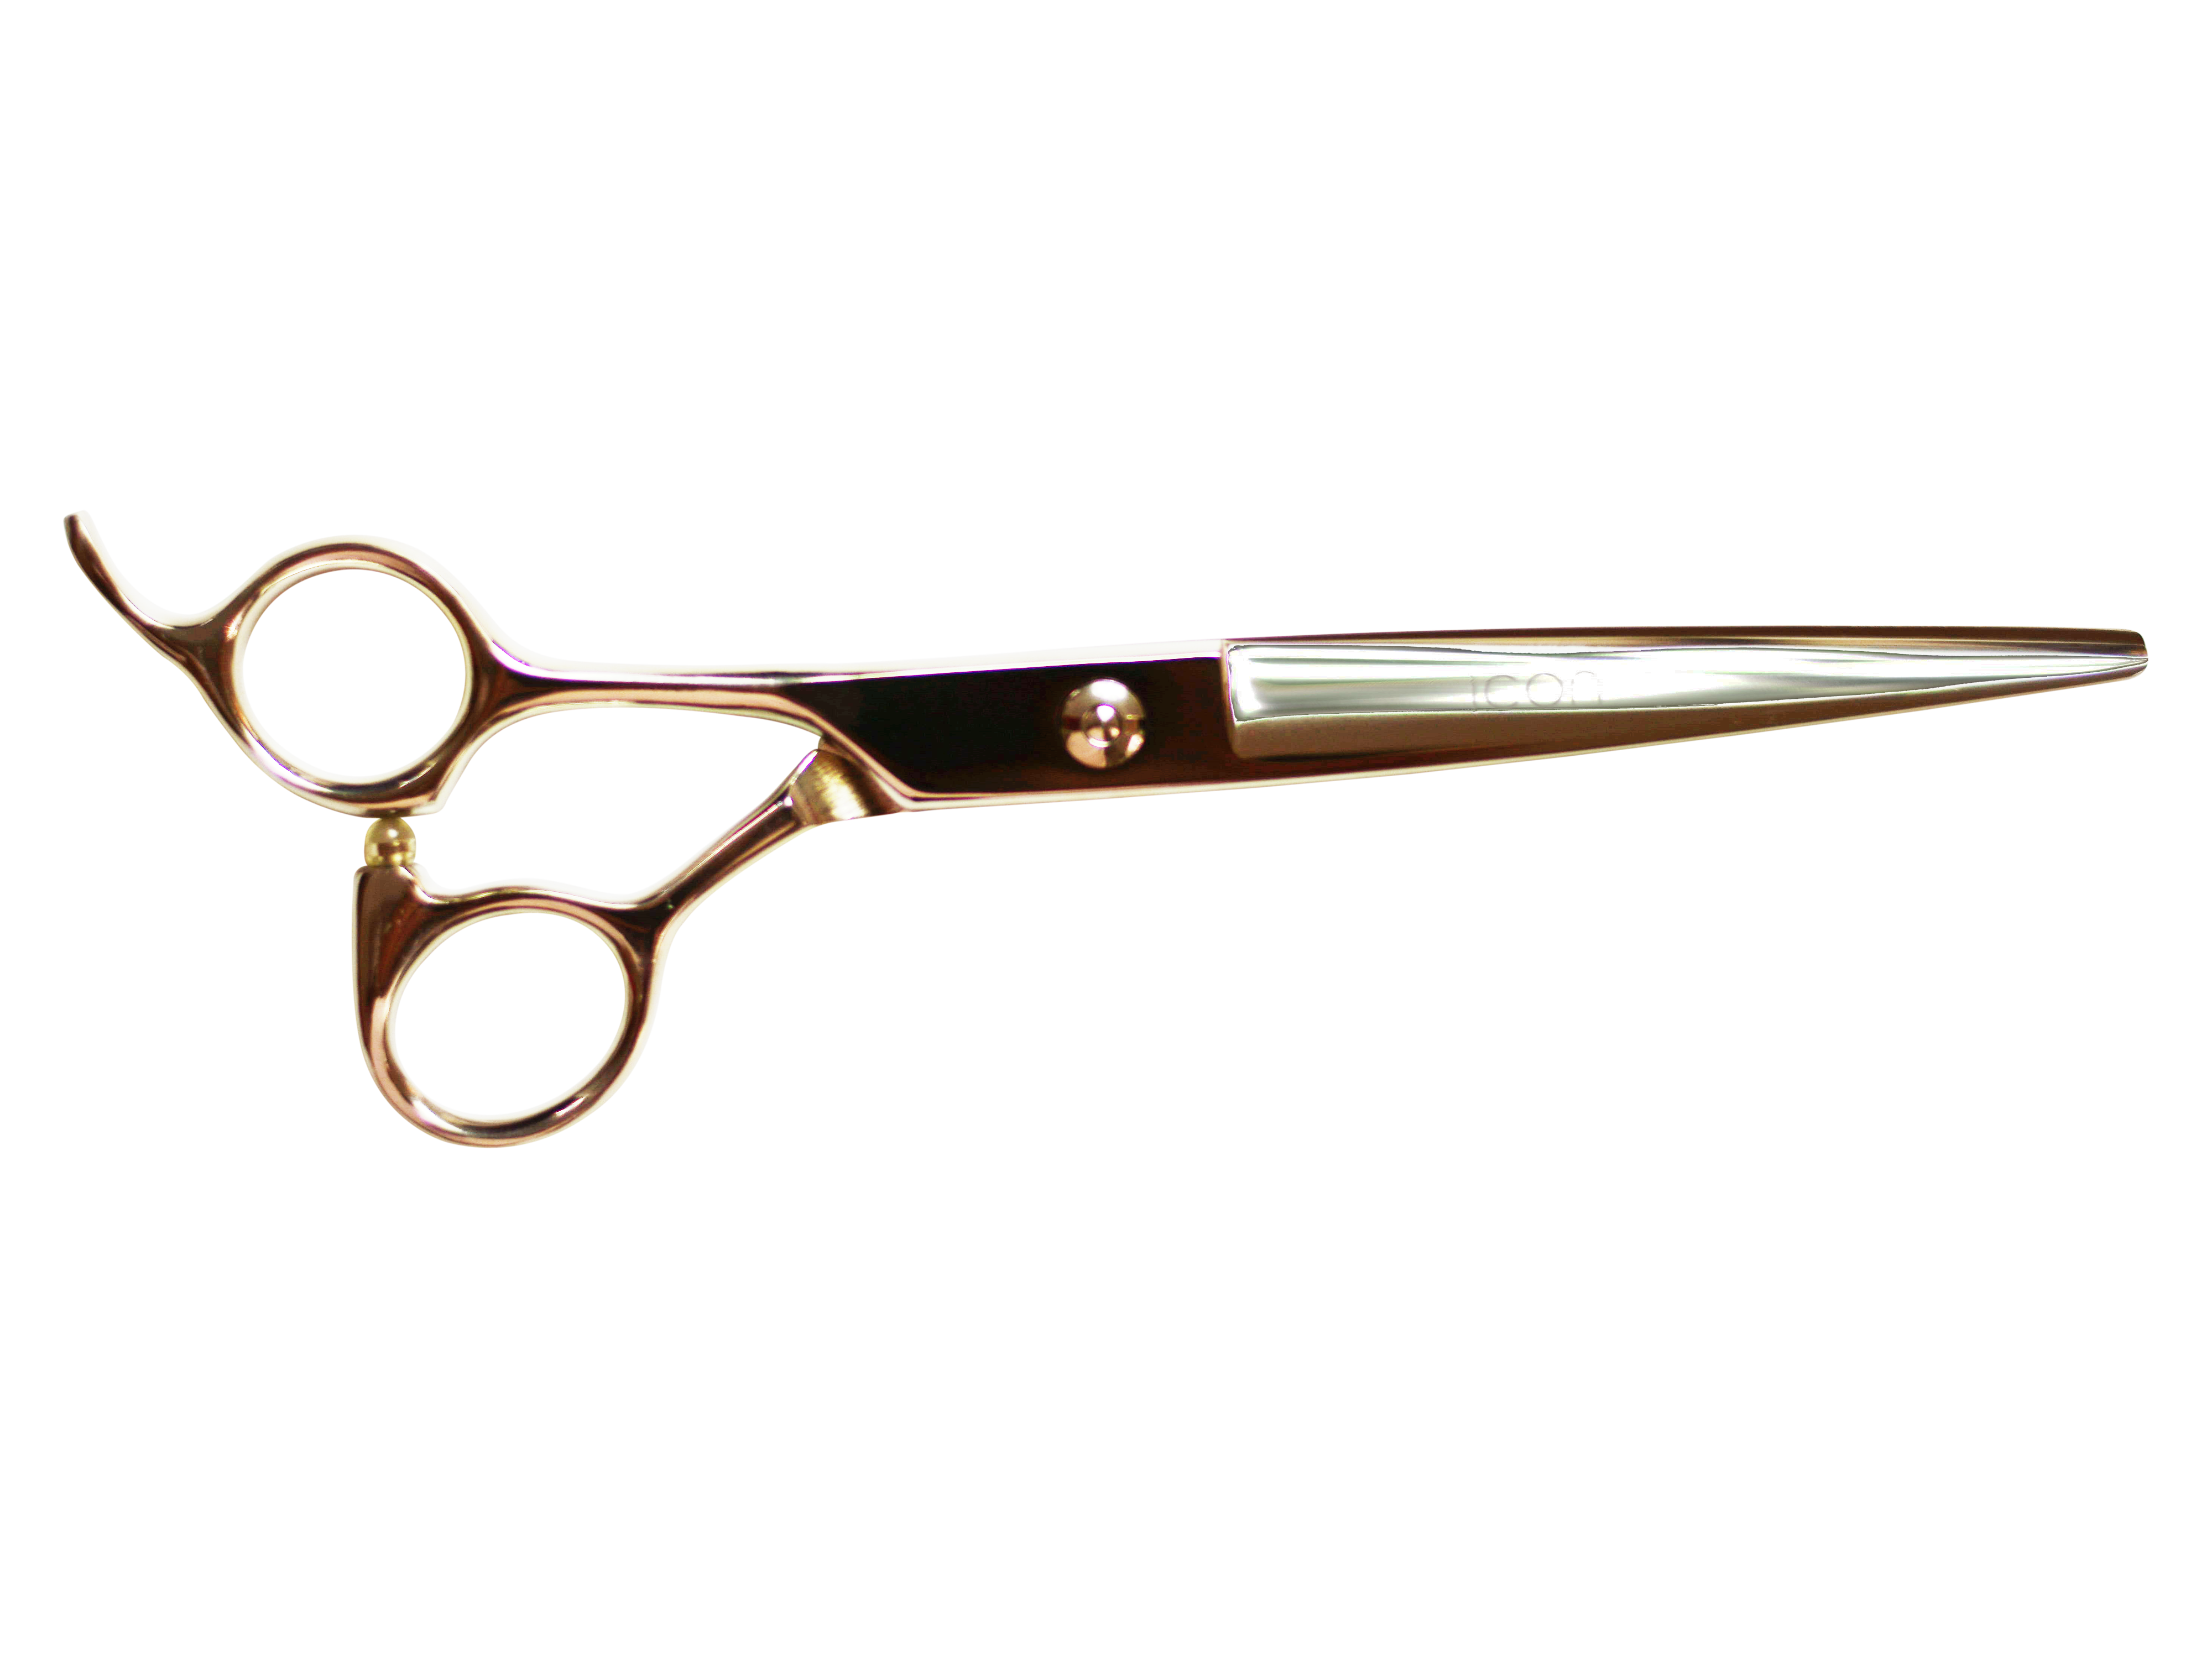 Hair scissor png. Icon left handed